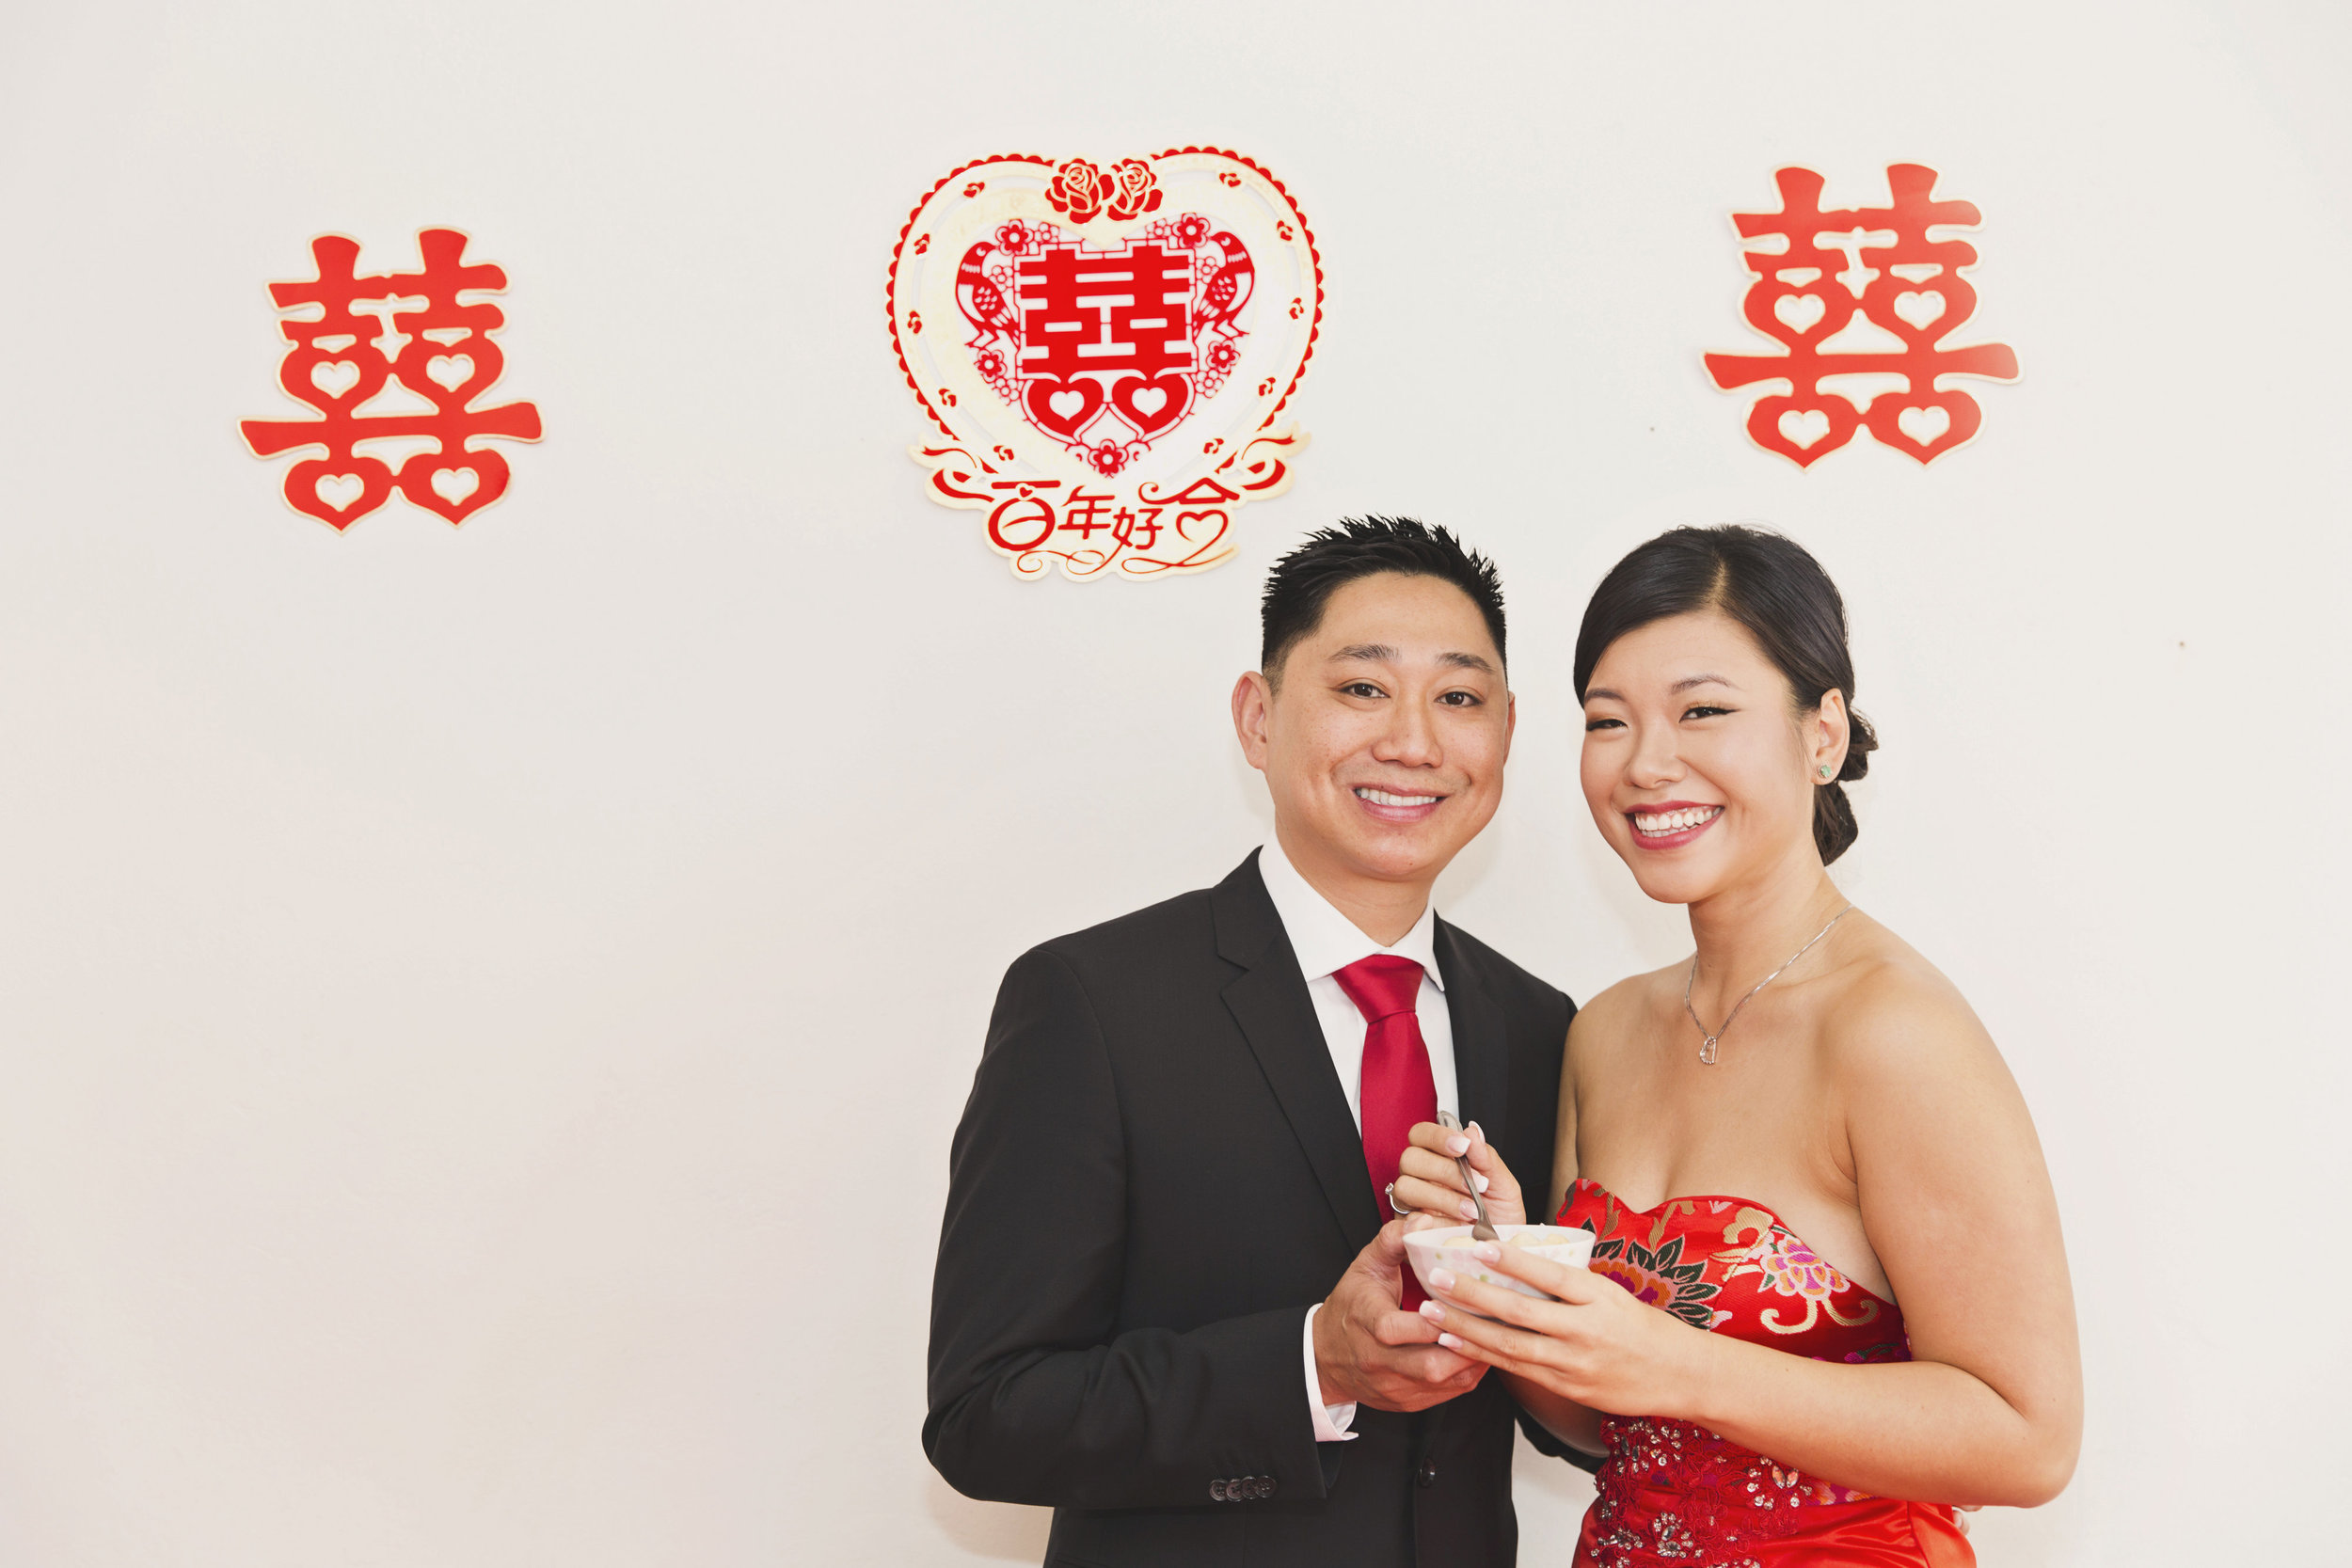 Beautiful Traditional Modern Chinese Wedding bride and groom share moment under double joy symbols.jpg